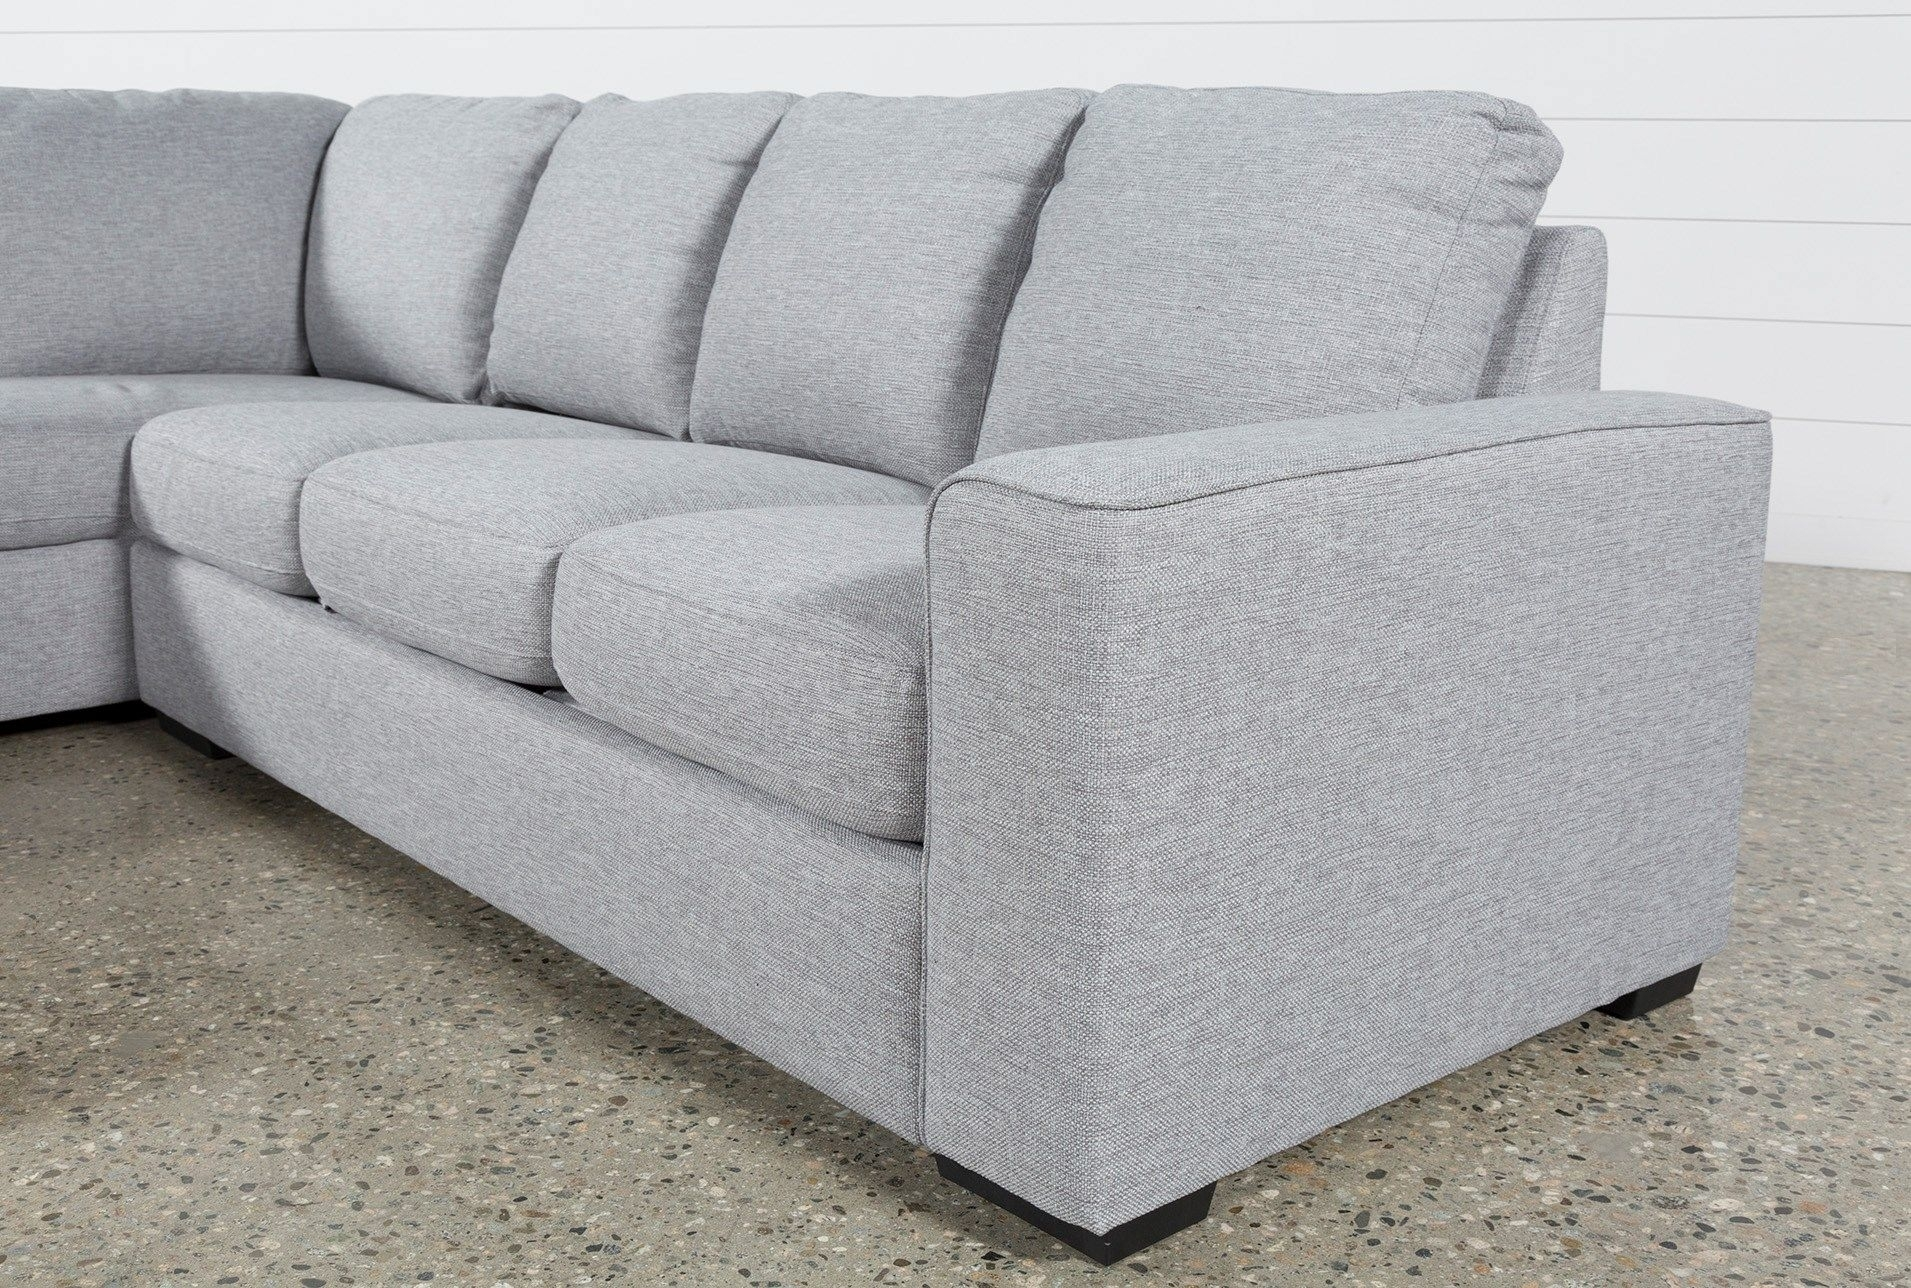 Lucy Grey 2 Piece Sectional W/laf Chaise | Gray And Room Regarding Lucy Grey 2 Piece Sectionals With Laf Chaise (Image 16 of 25)